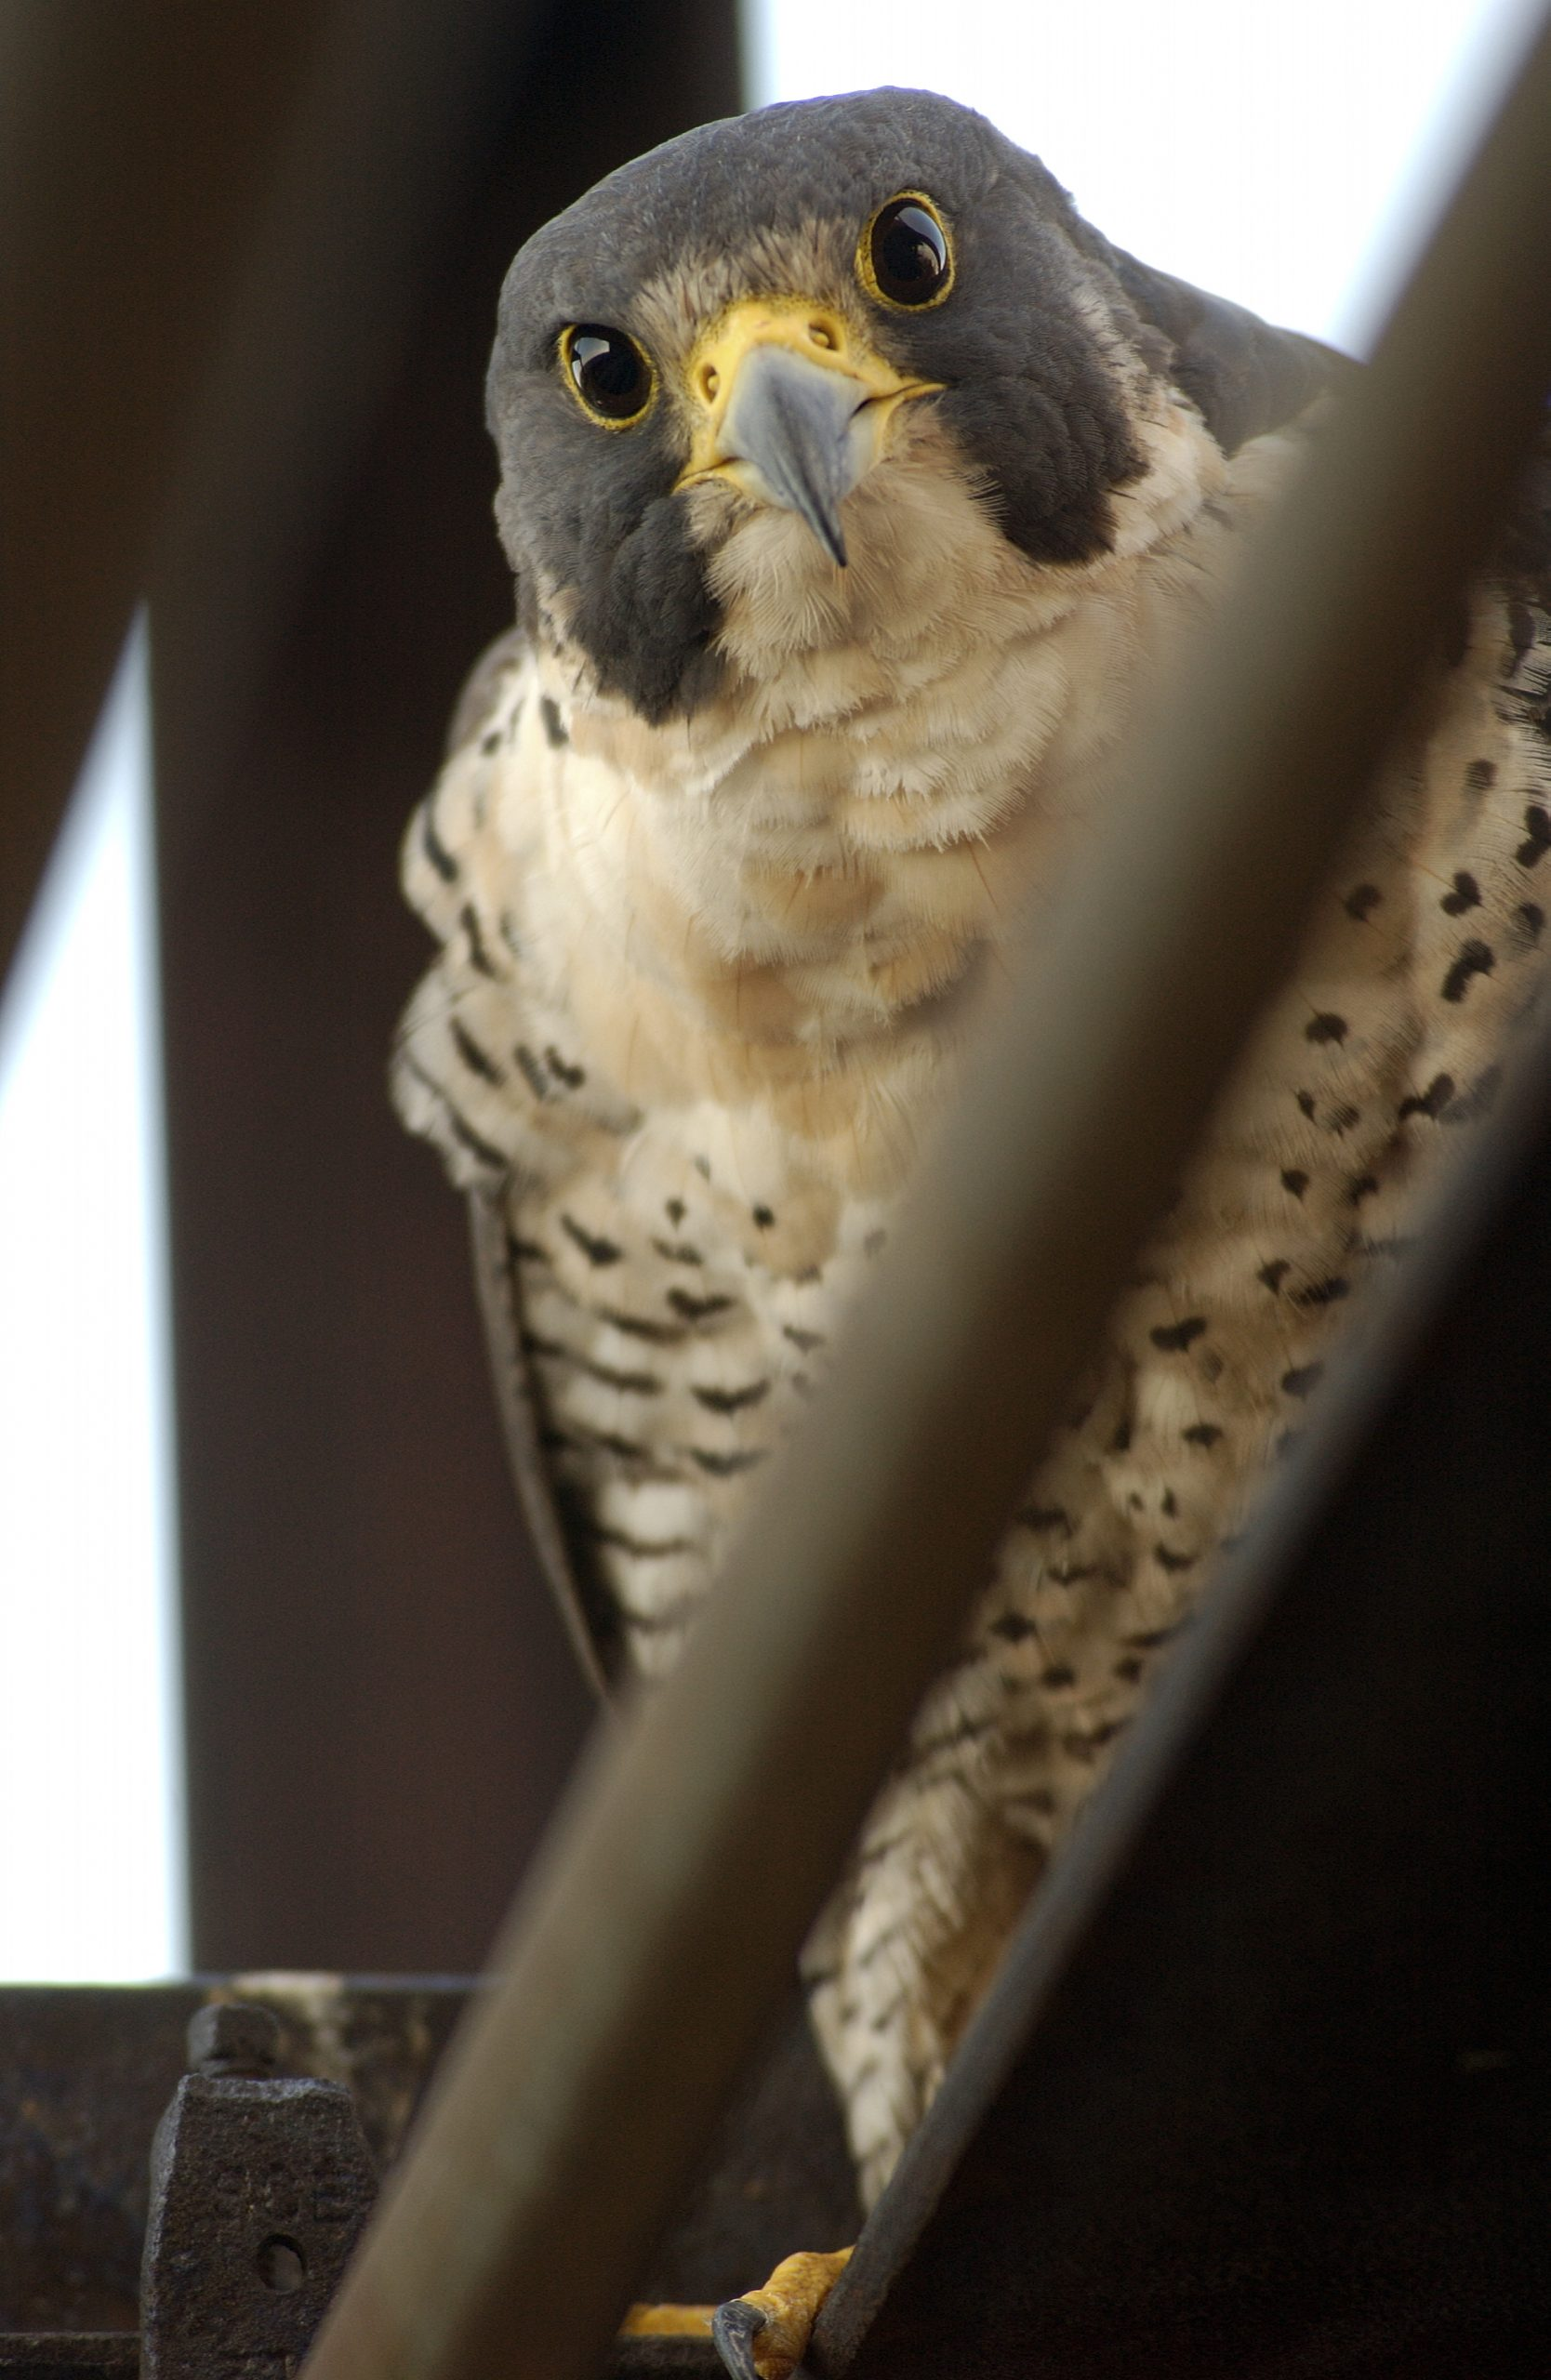 A peregrine falcon stares into the camera from above.